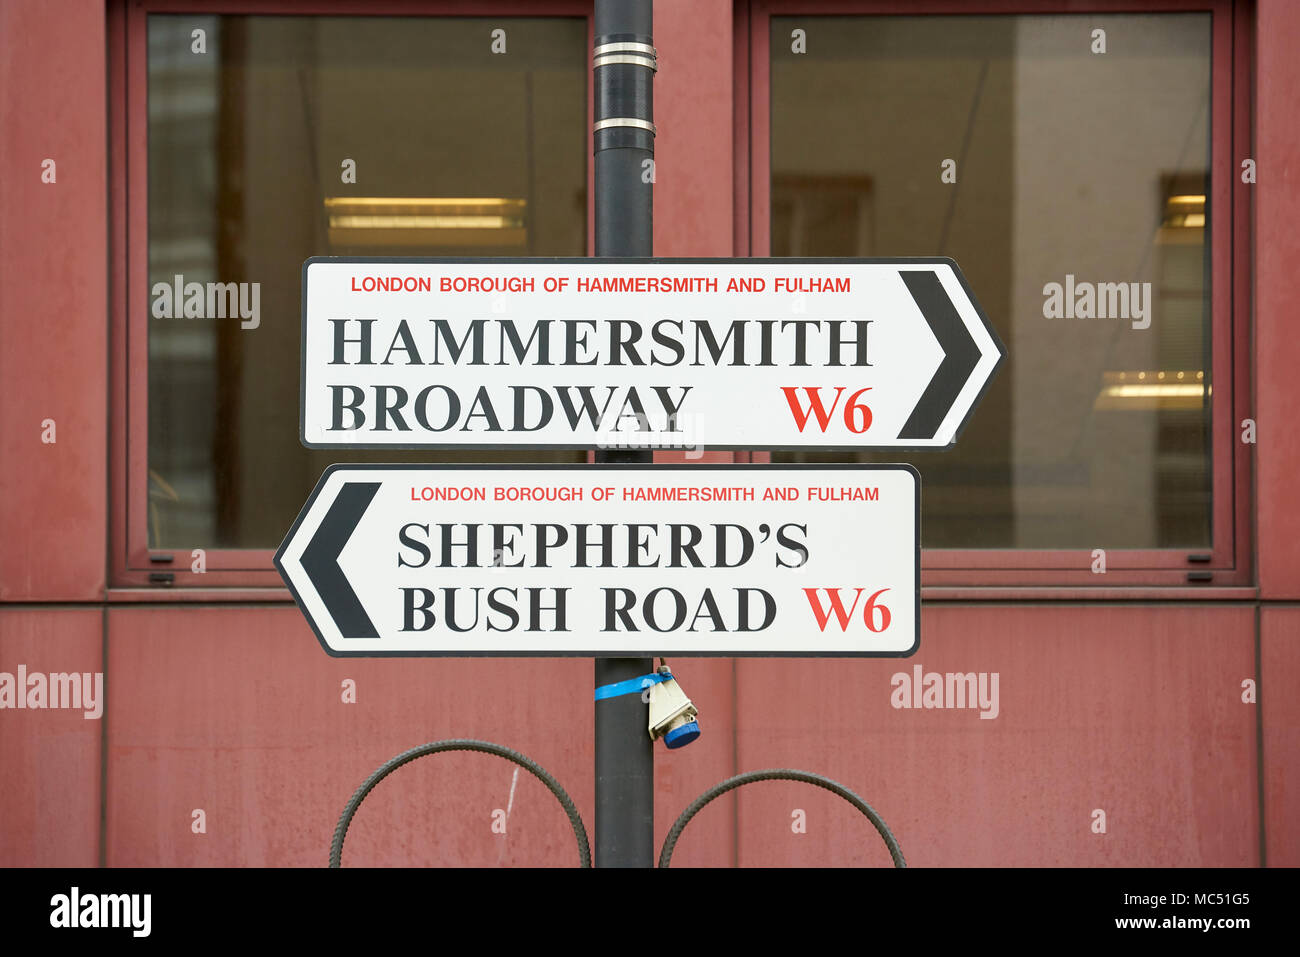 Street sign with directions to Hammersmith and Shepherds Bush, both located within the London Borough of Hammersmith and Fulham. Stock Photo